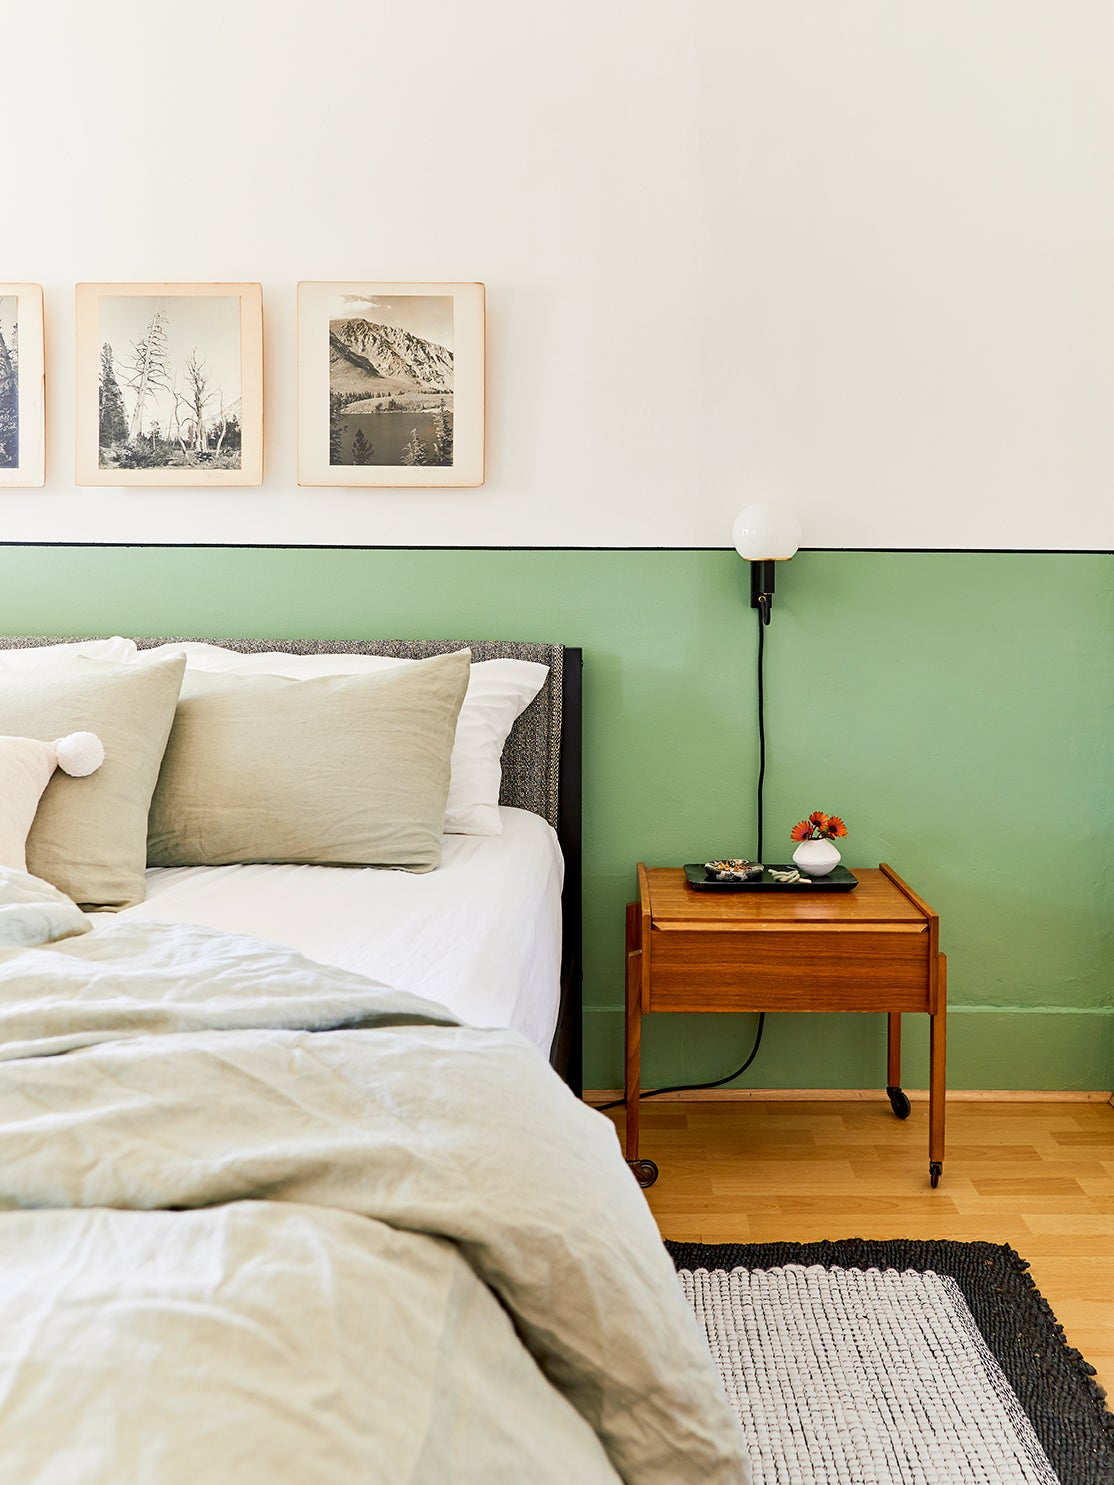 What Color to Paint Your Walls, According to Your Zodiac Sign